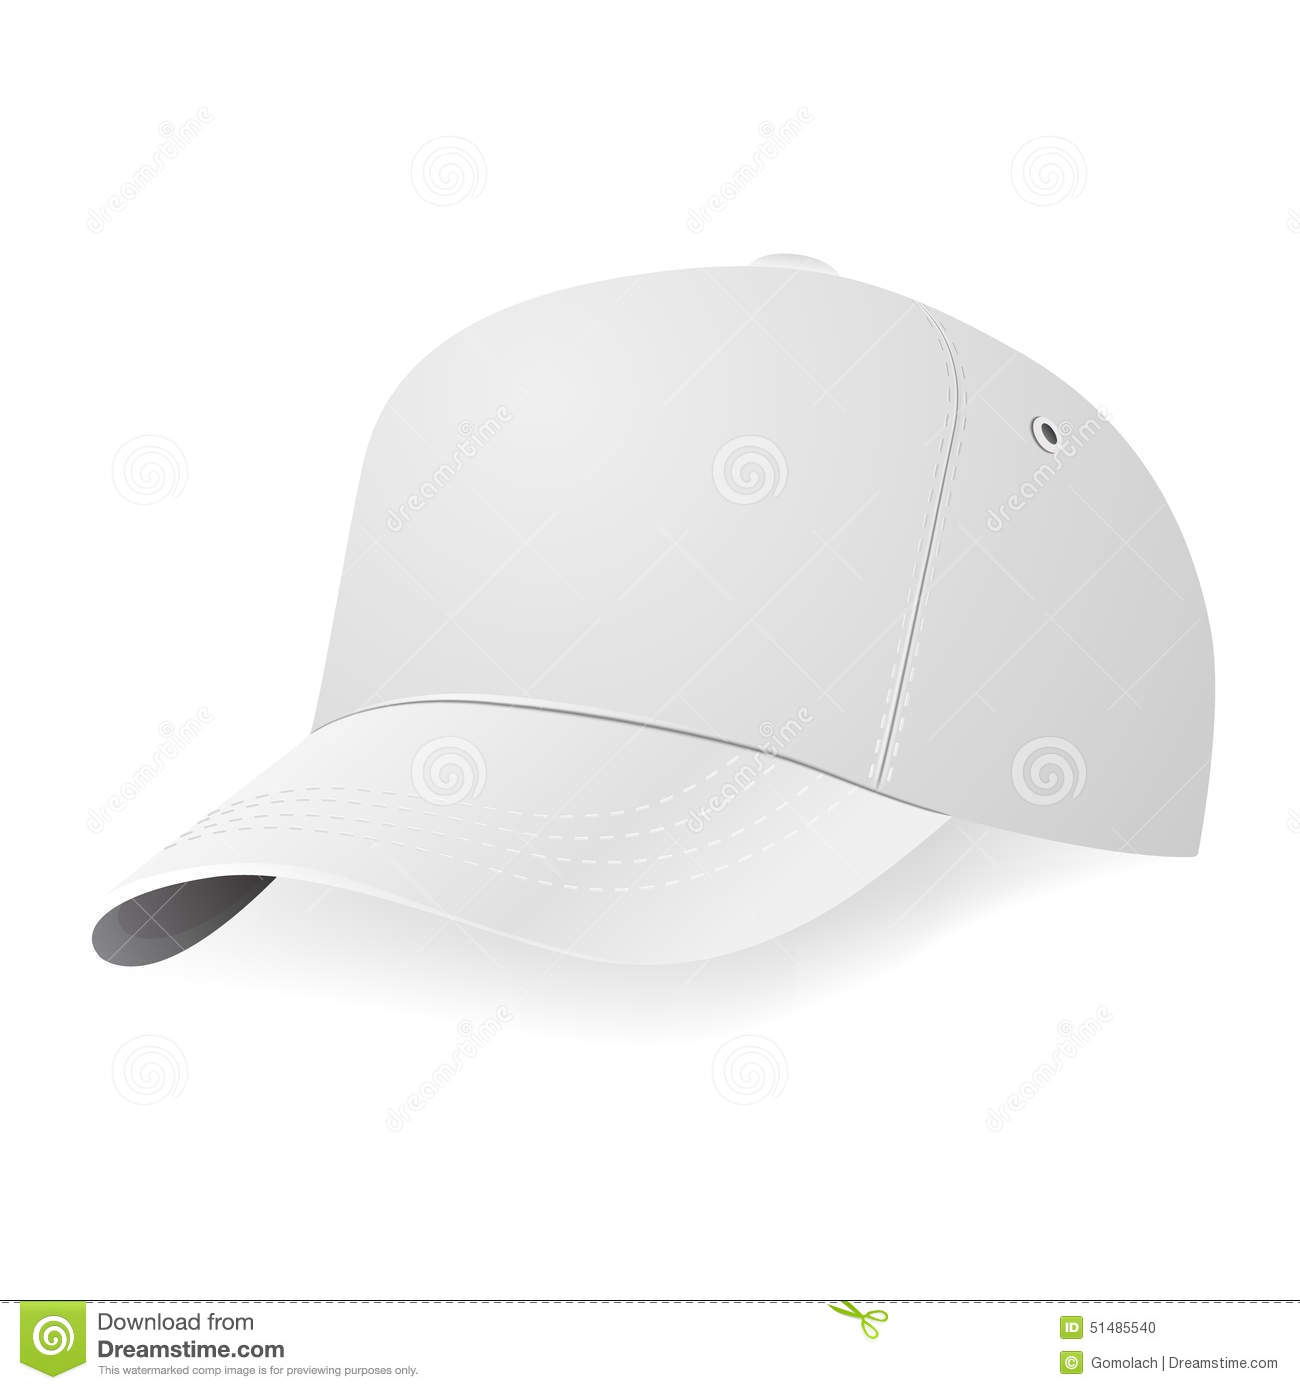 white baseball cap template stock vector illustration of design